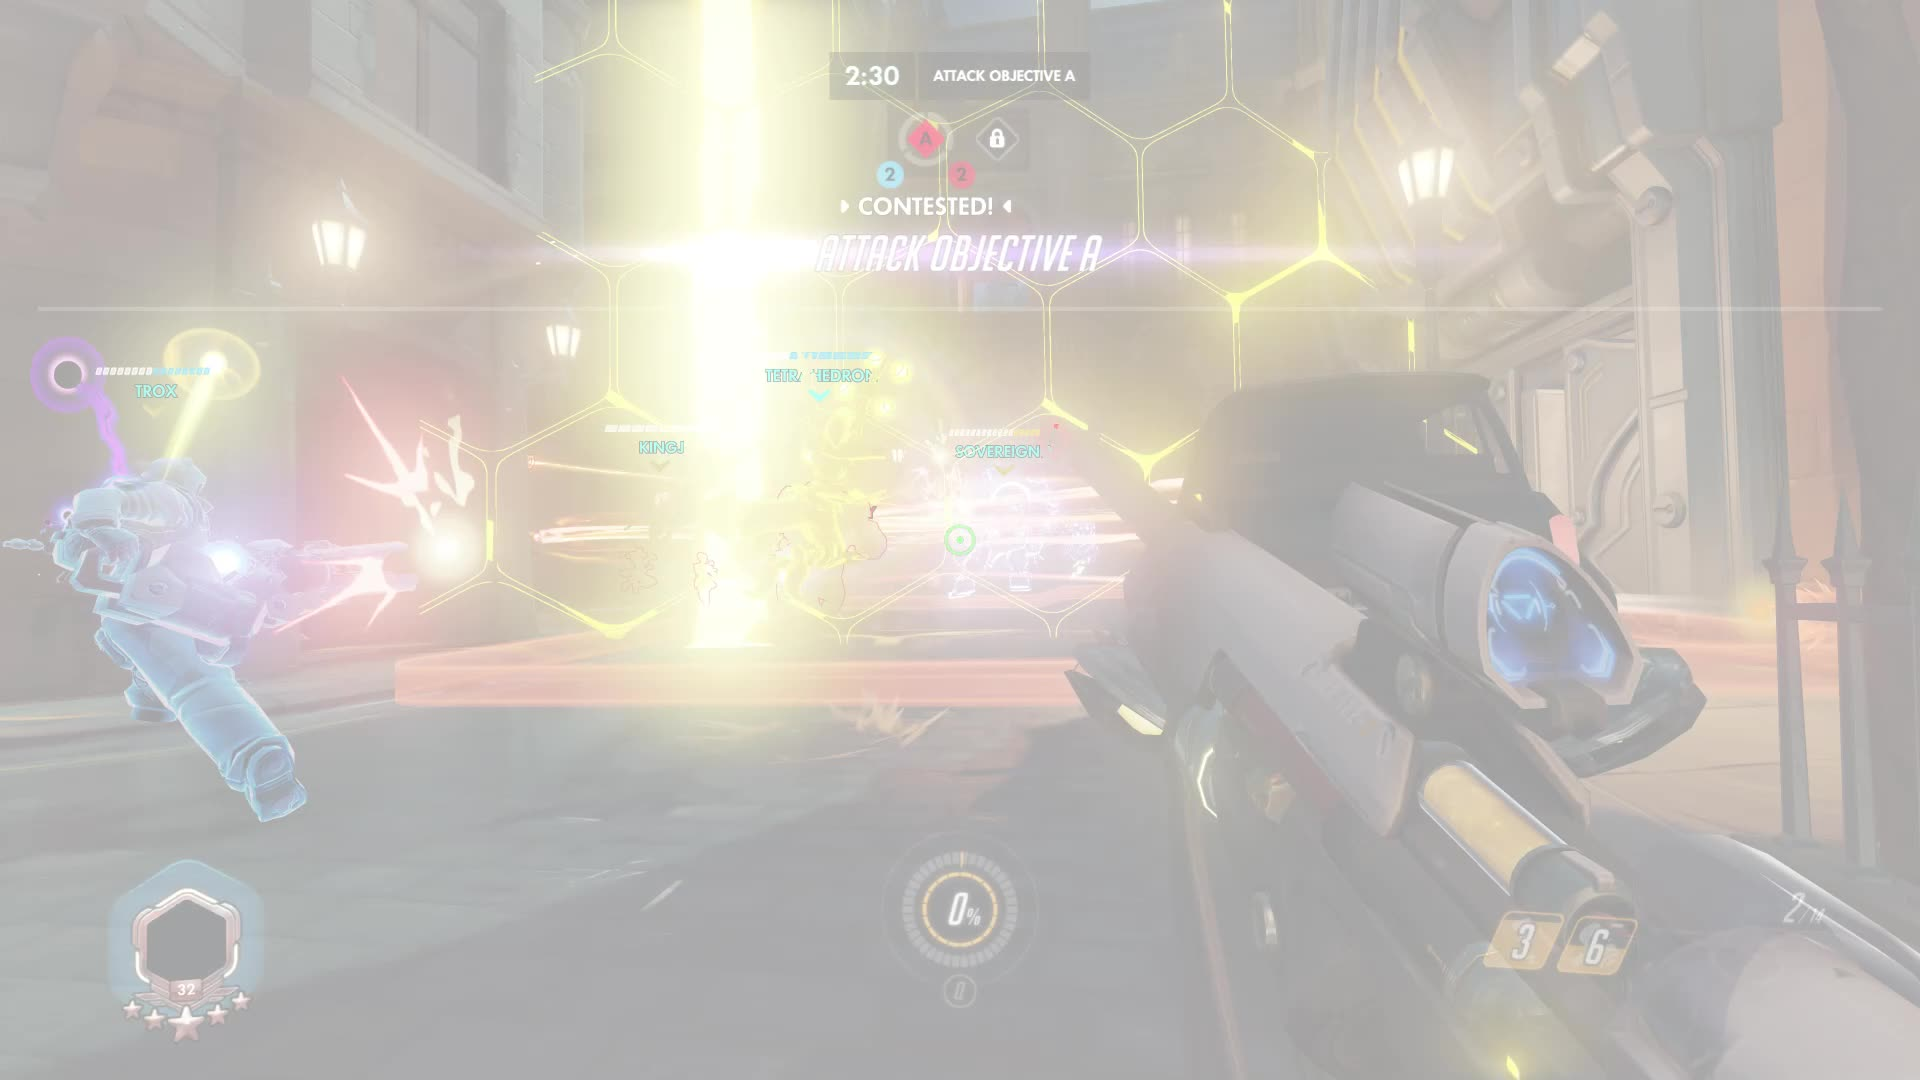 ana, highlight, overwatch, he's fallen and can't get up GIFs